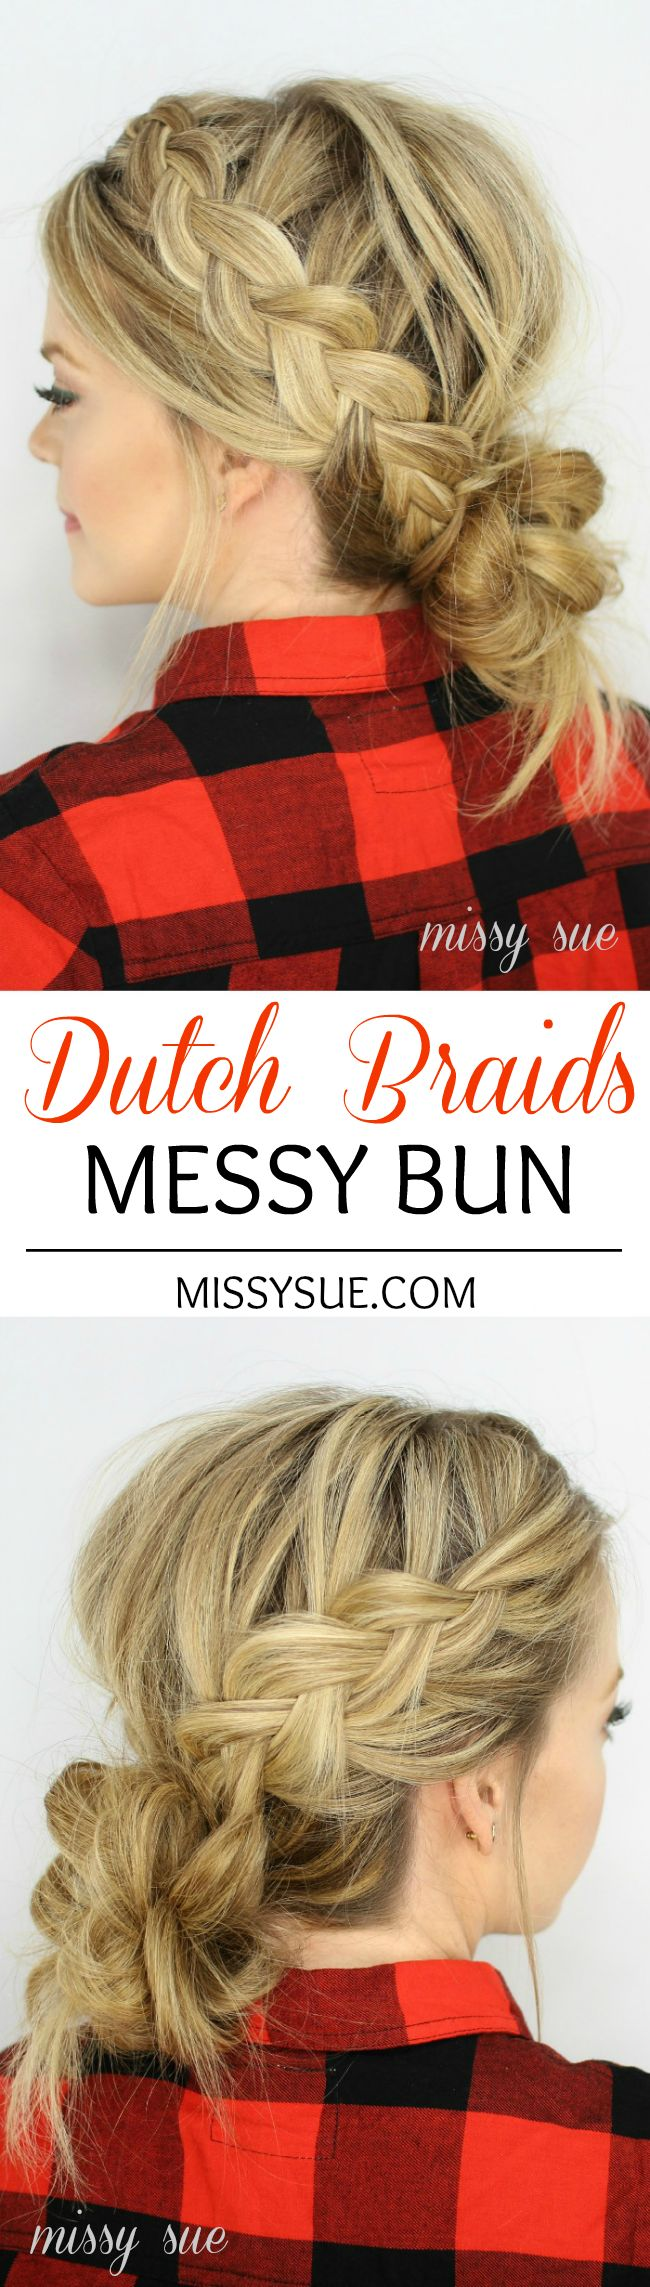 Dutch Braids/Messy Buns